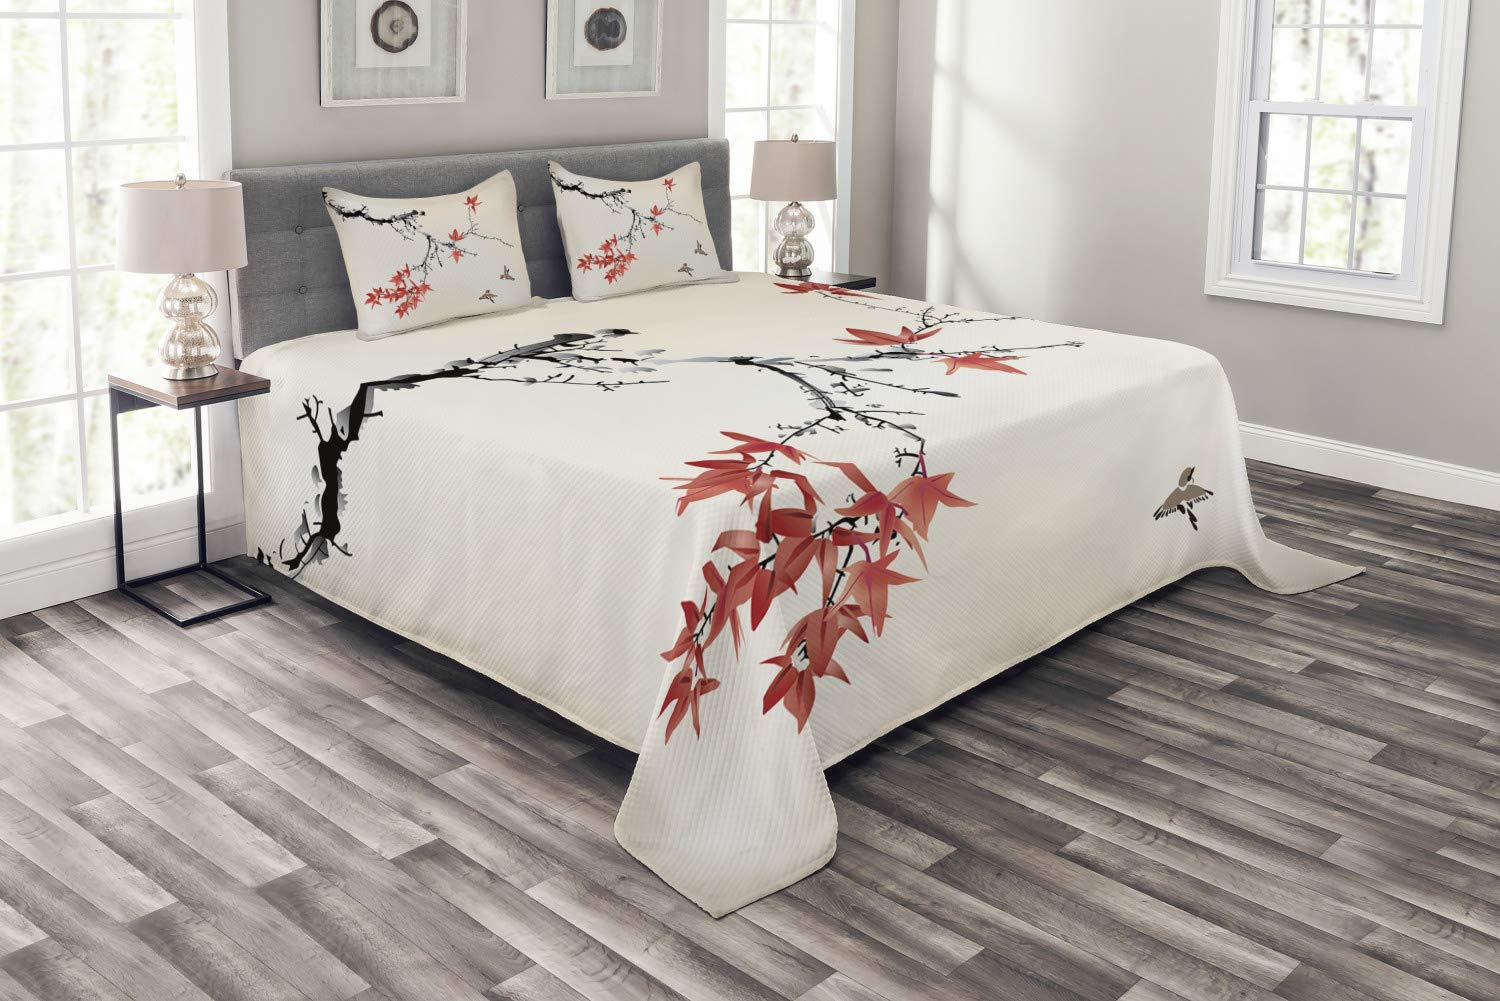 Ambesonne Japanese Bedspread, Cherry Blossom Sakura Tree Branches Romantic Spring Themed Watercolor Picture, Decorative Quilted 3 Piece Coverlet Set with 2 Pillow Shams, King Size, Coral Black